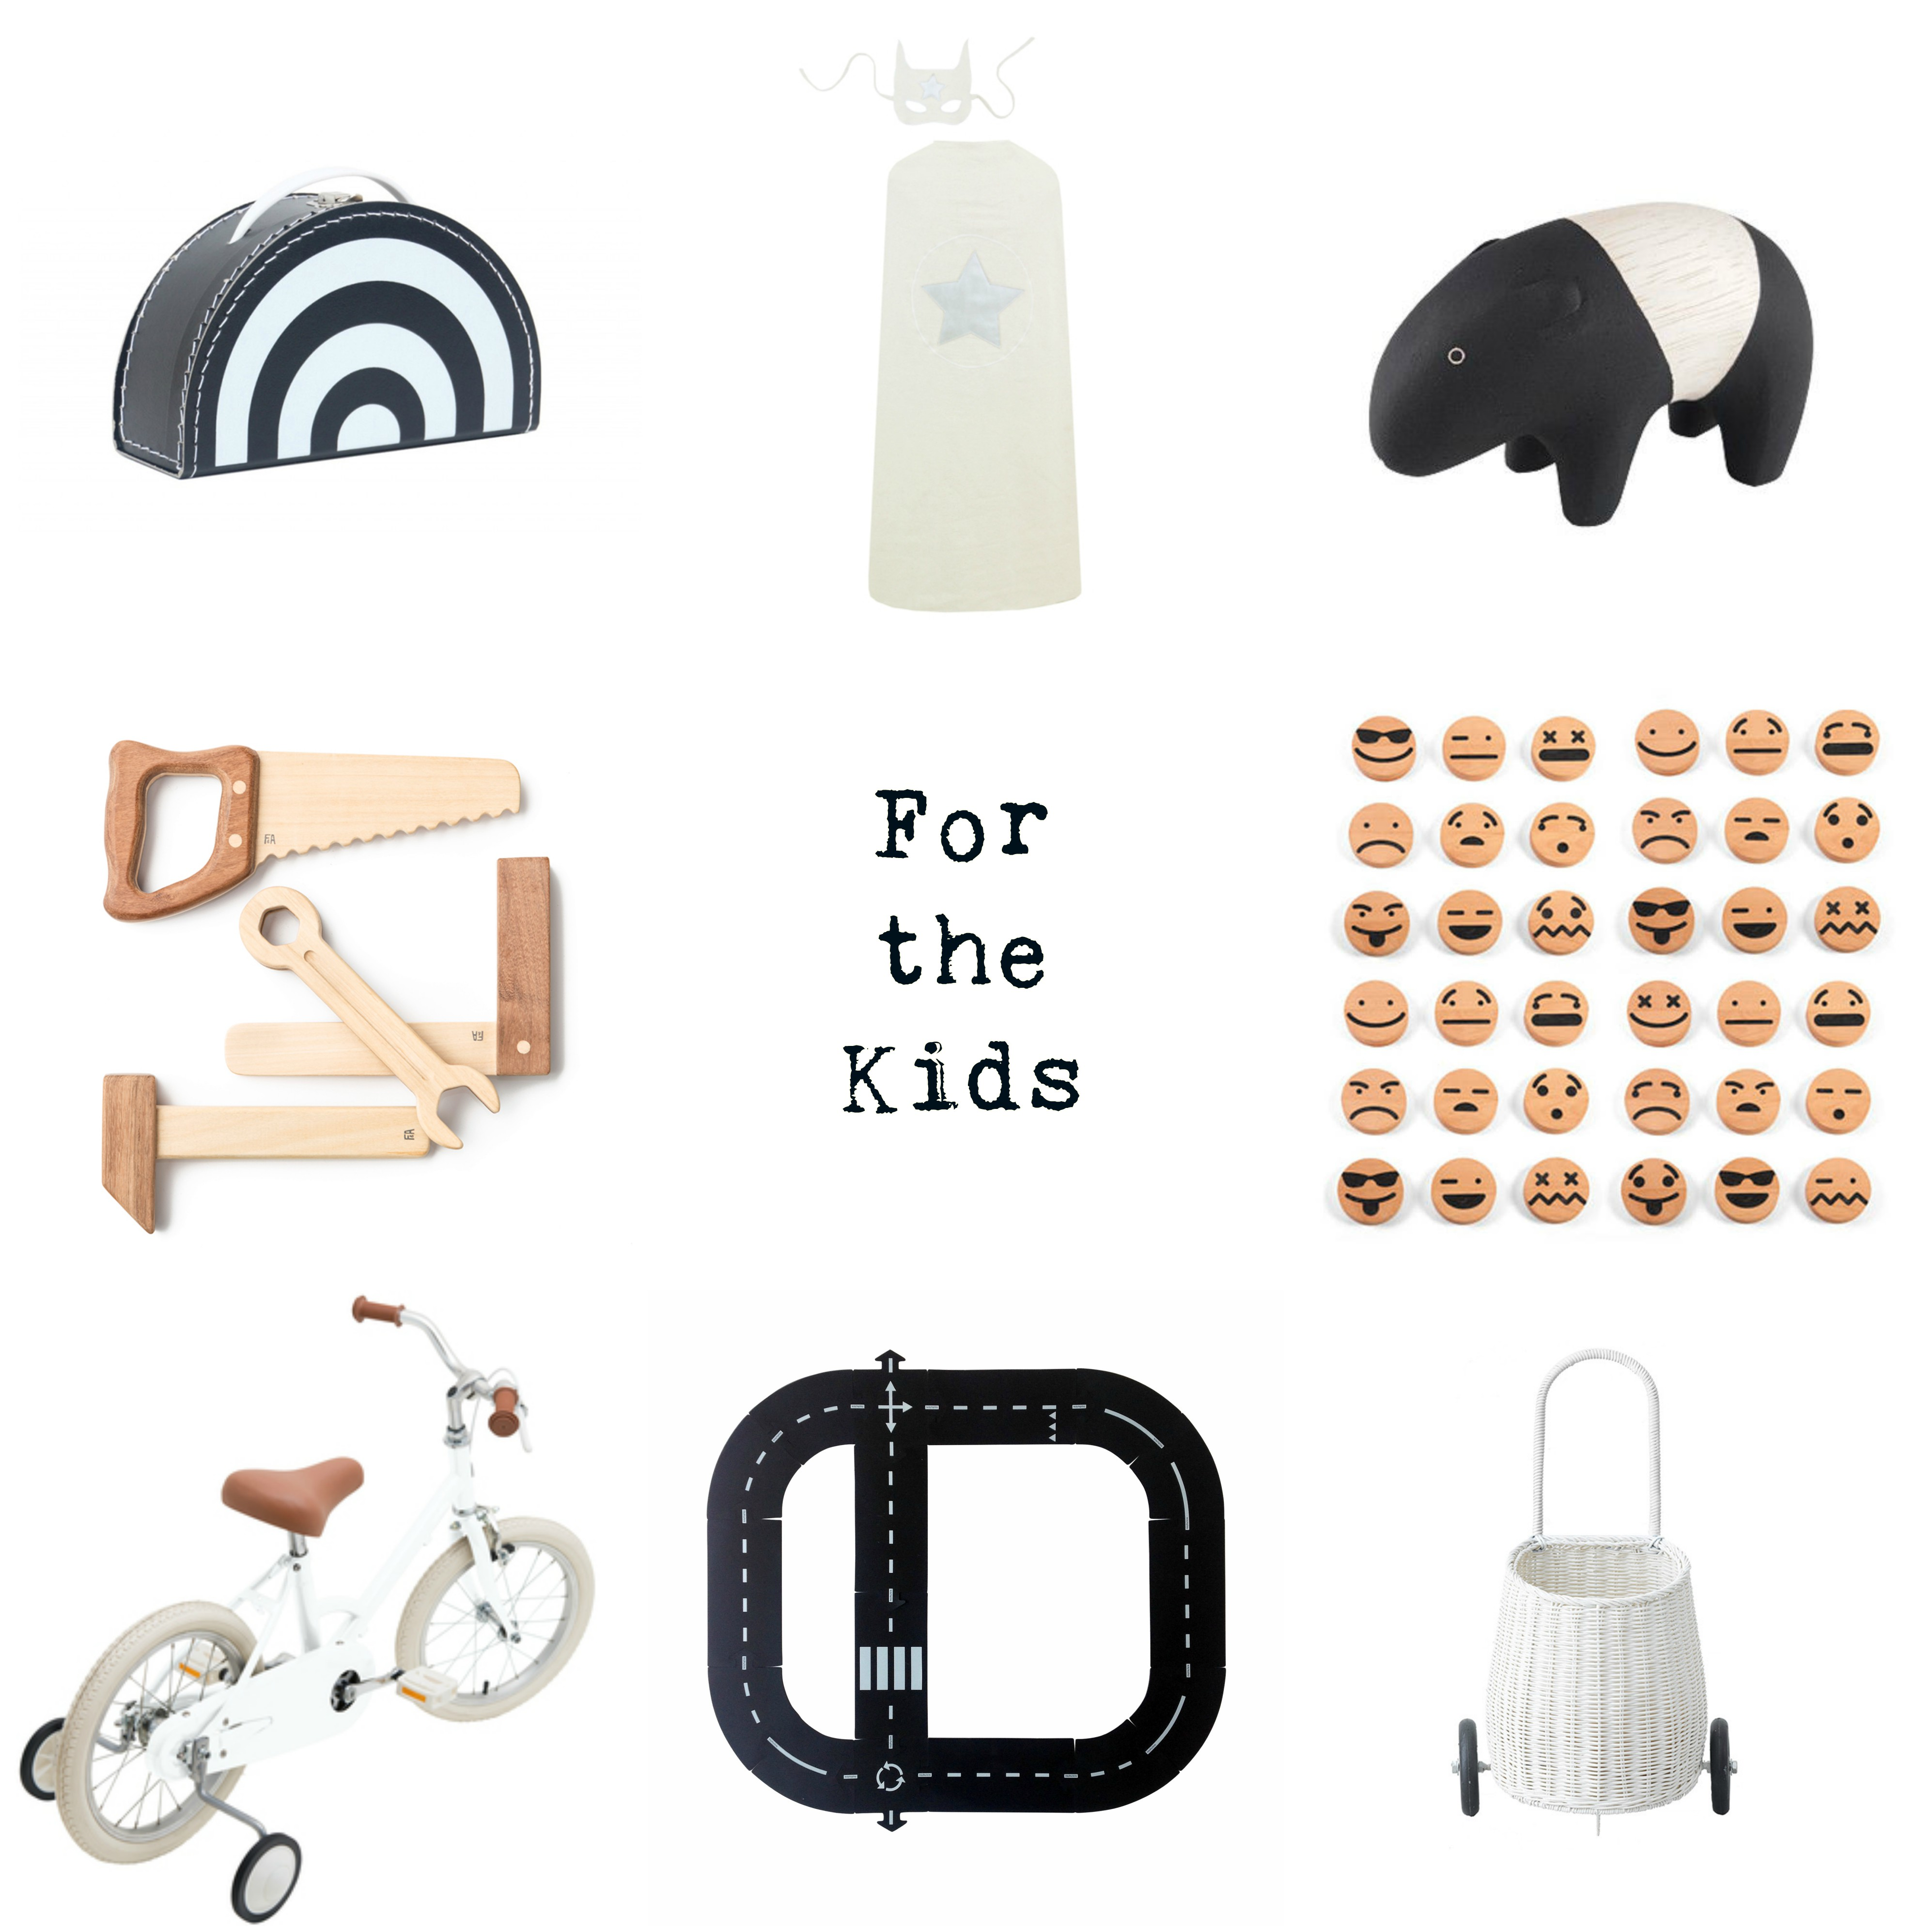 kids_childrens_2016_gift_guide_christmas